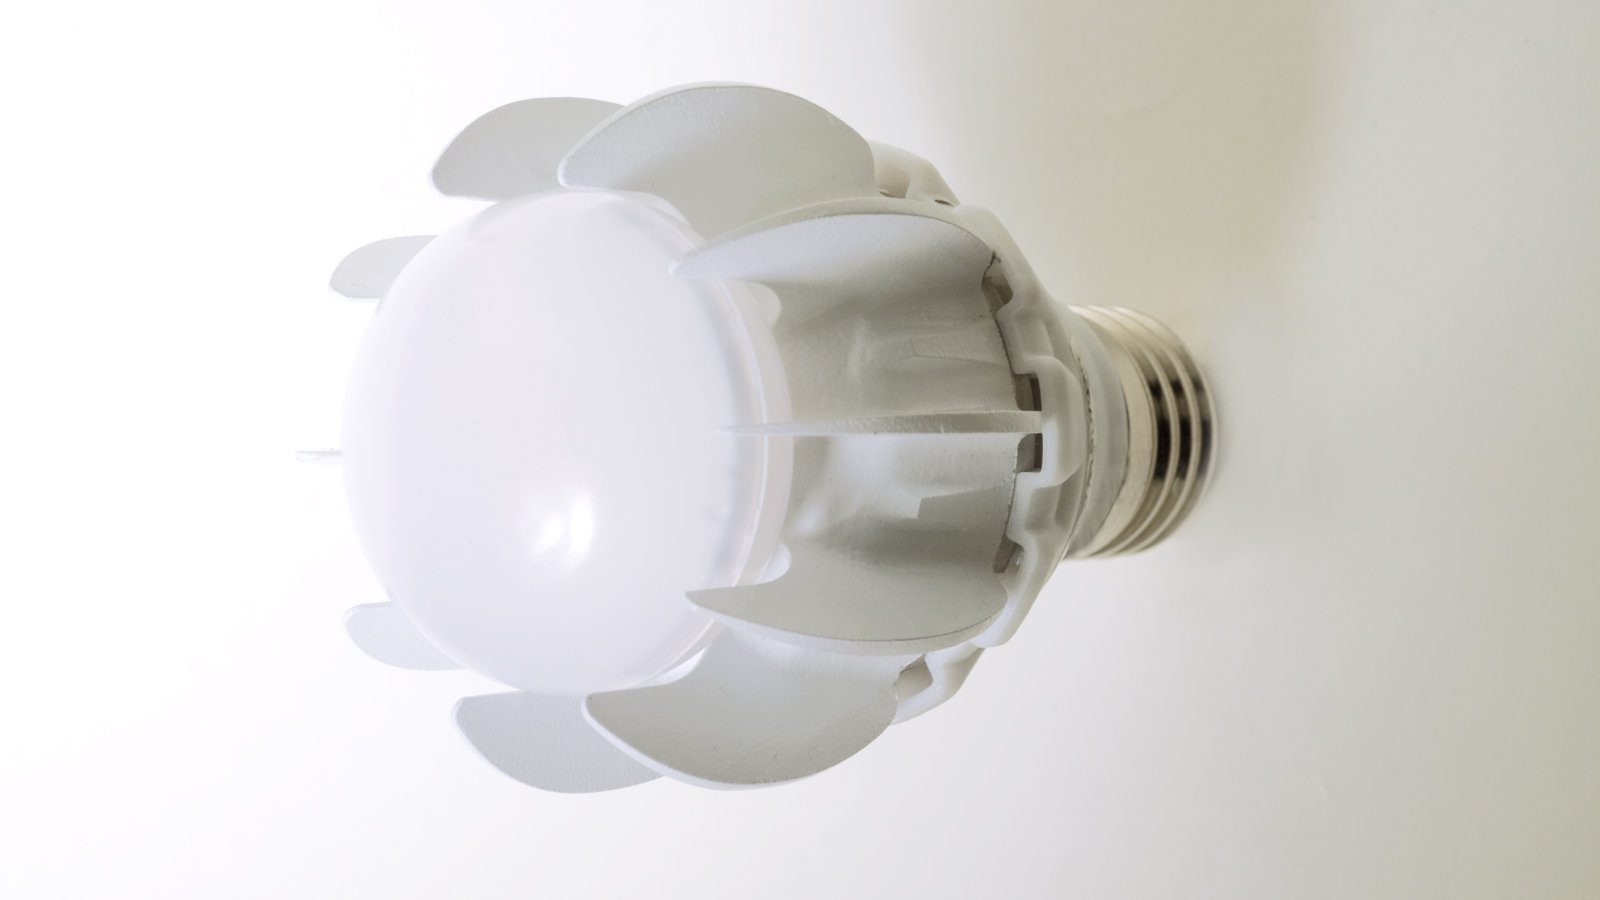 Click here to read GE Figures Out How to Squeeze 100W of Light from a 27W LED Bulb